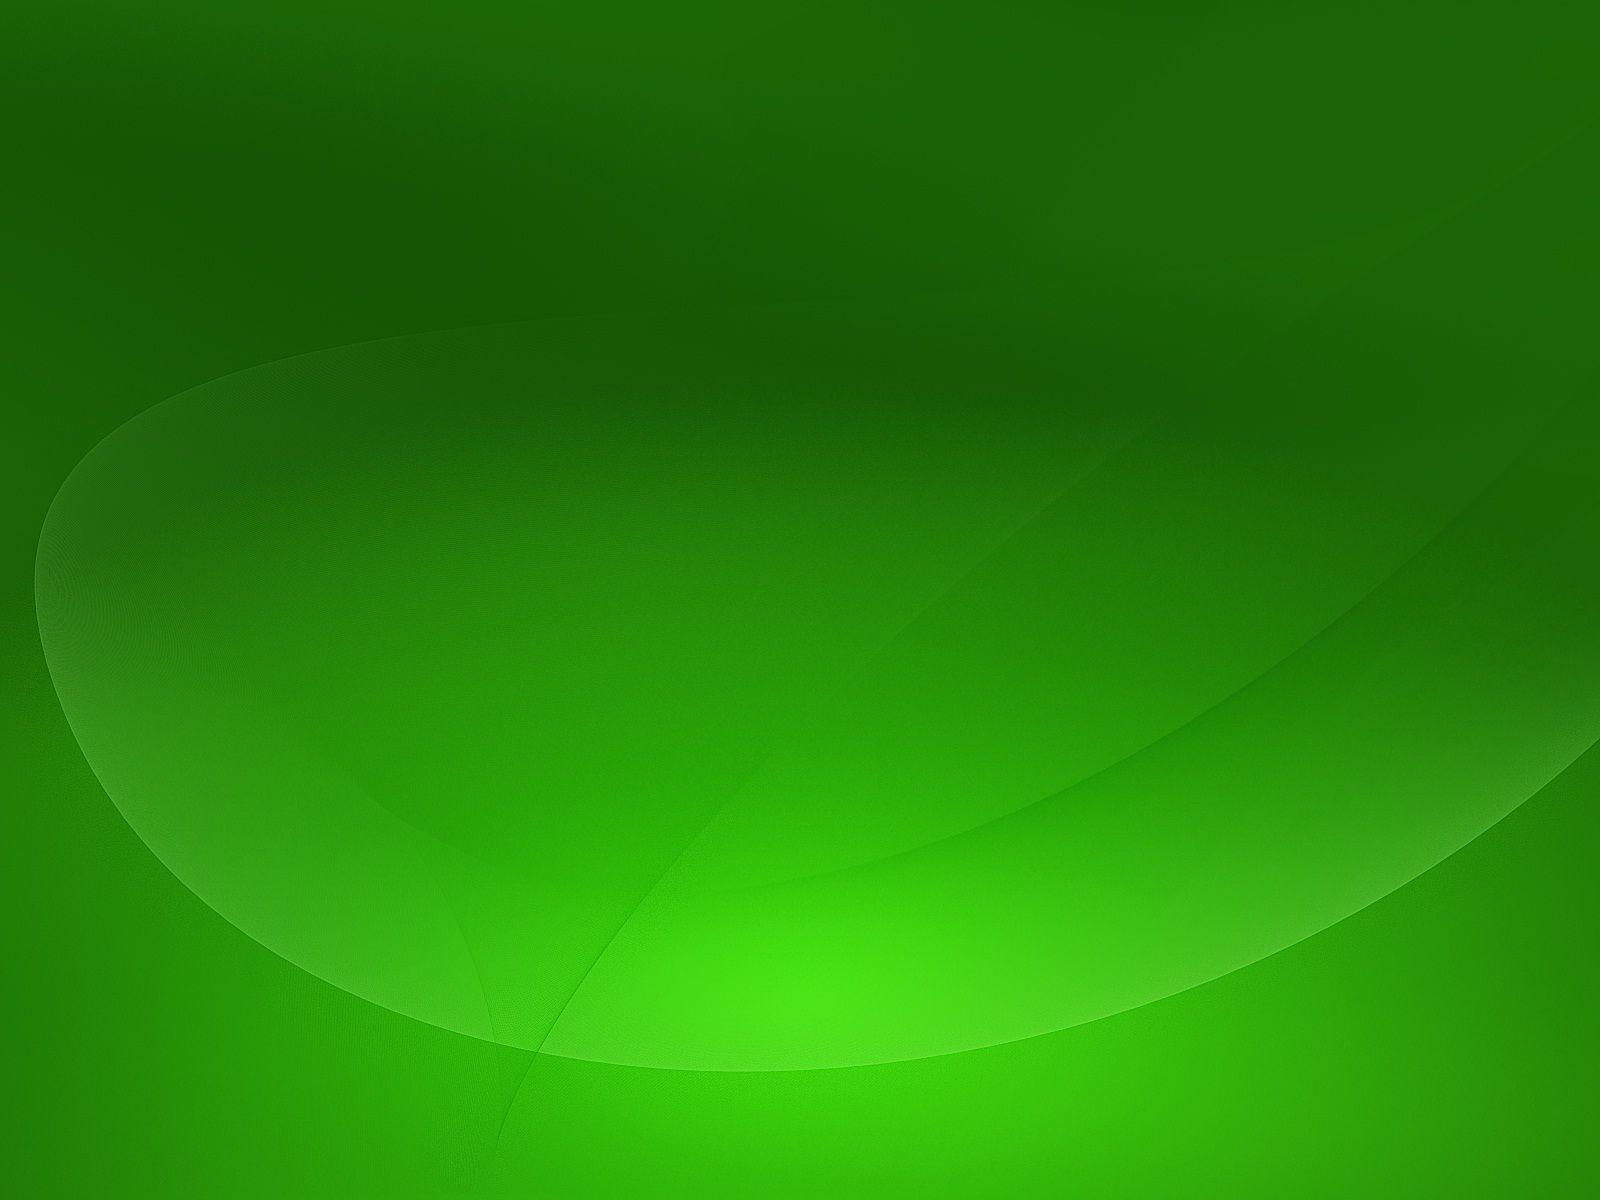 green wallpaper design hd - photo #10